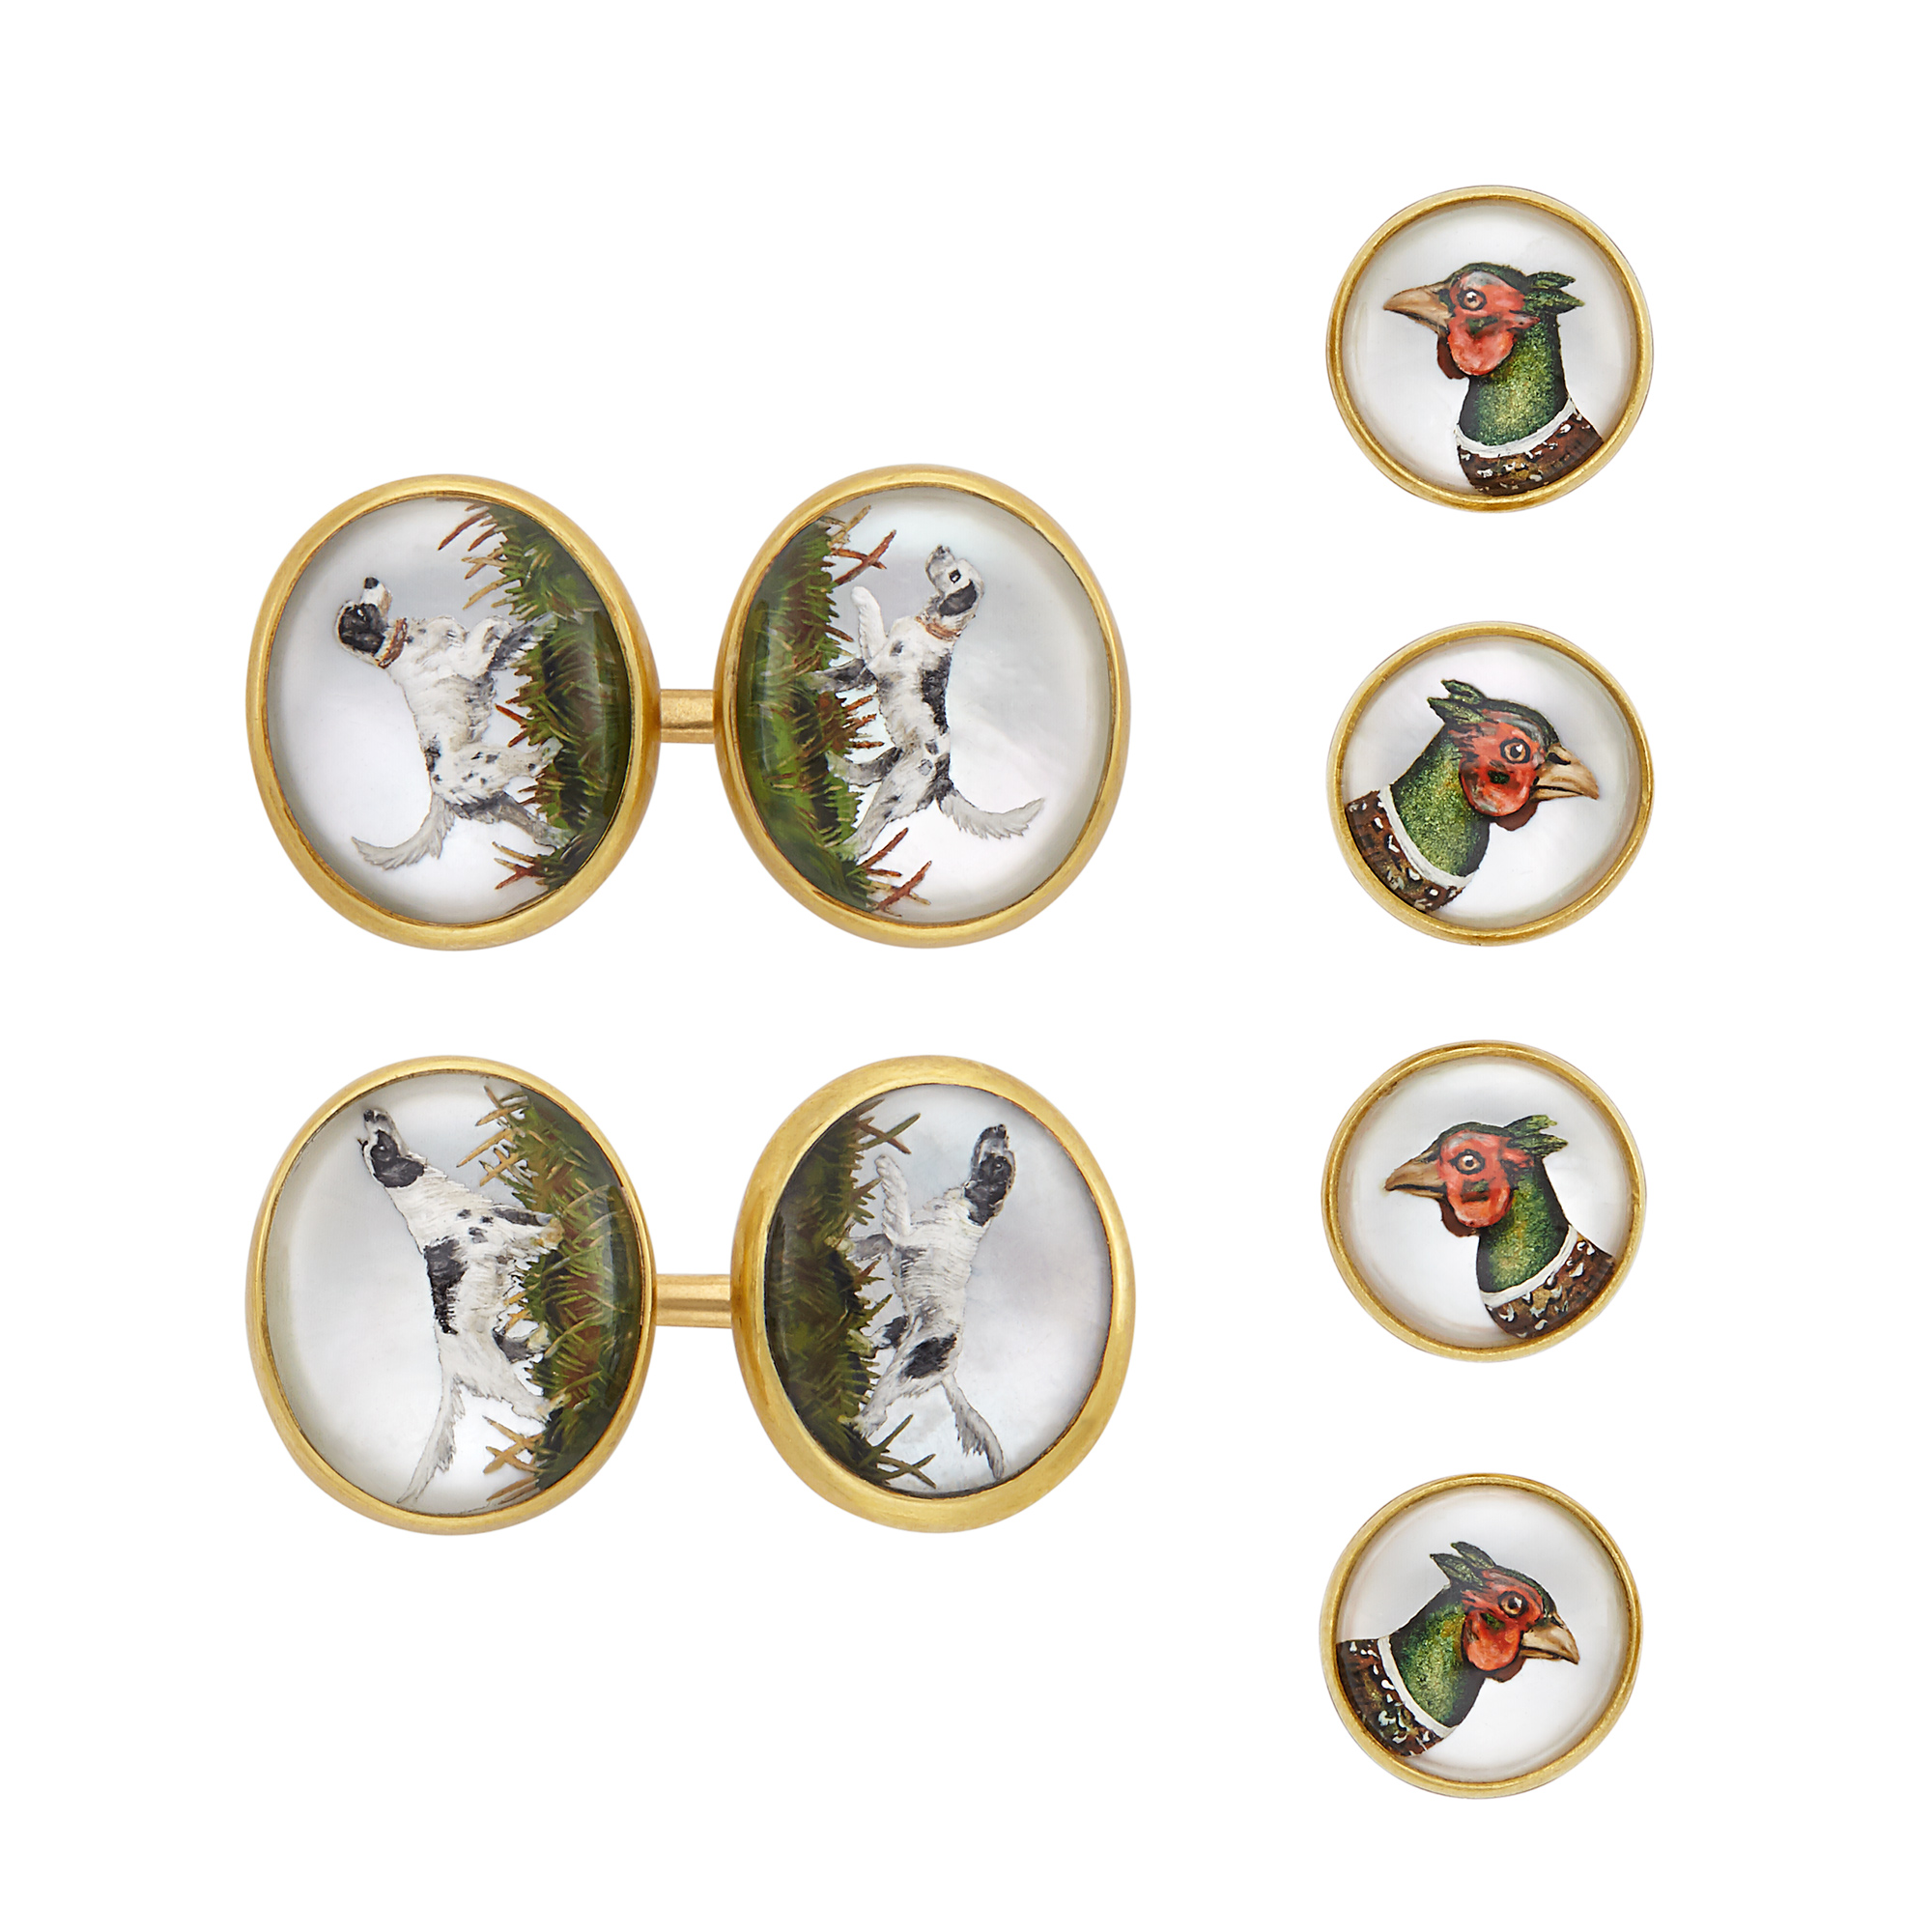 Lot image - Four Gold and Reverse Crystal Intaglio Studs, Asprey, and Pair of Gold and Reverse Crystal Intaglio Cufflinks